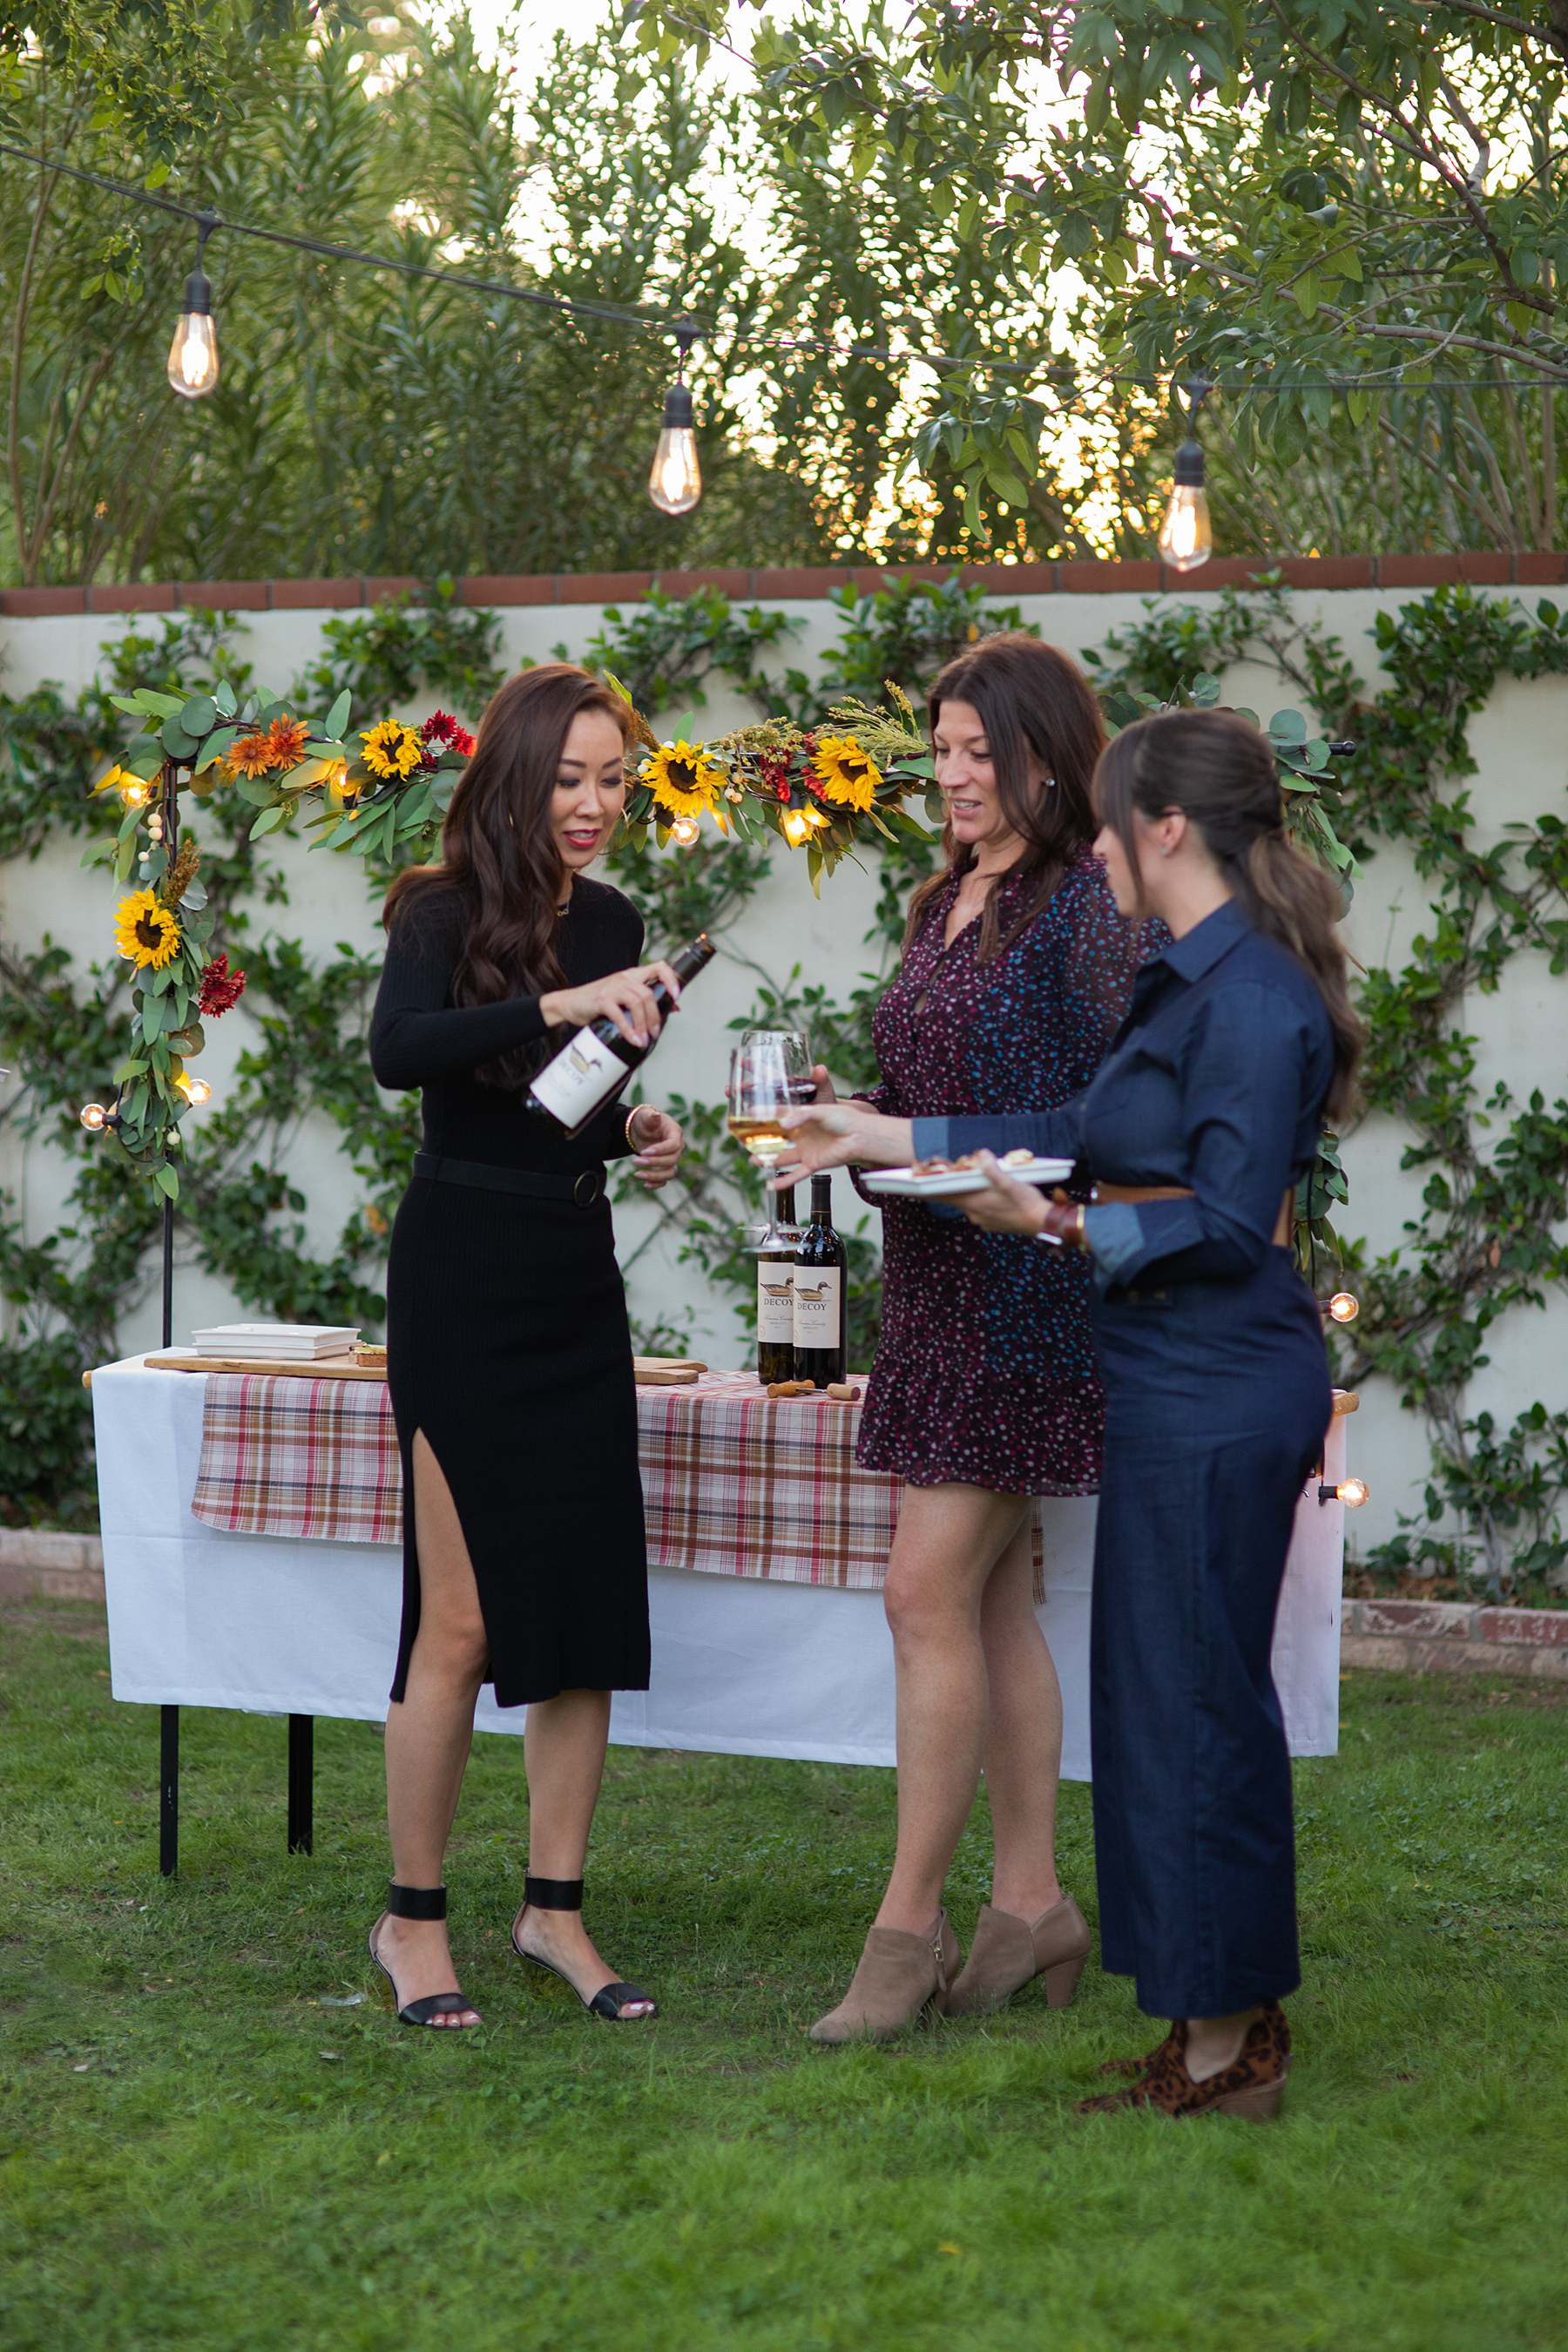 pouring wine backyard party decoy wine night party Friendsgiving outdoor party catch up - Diana Elizabeth blog phoenix lifestyle entertaining hostess blogger